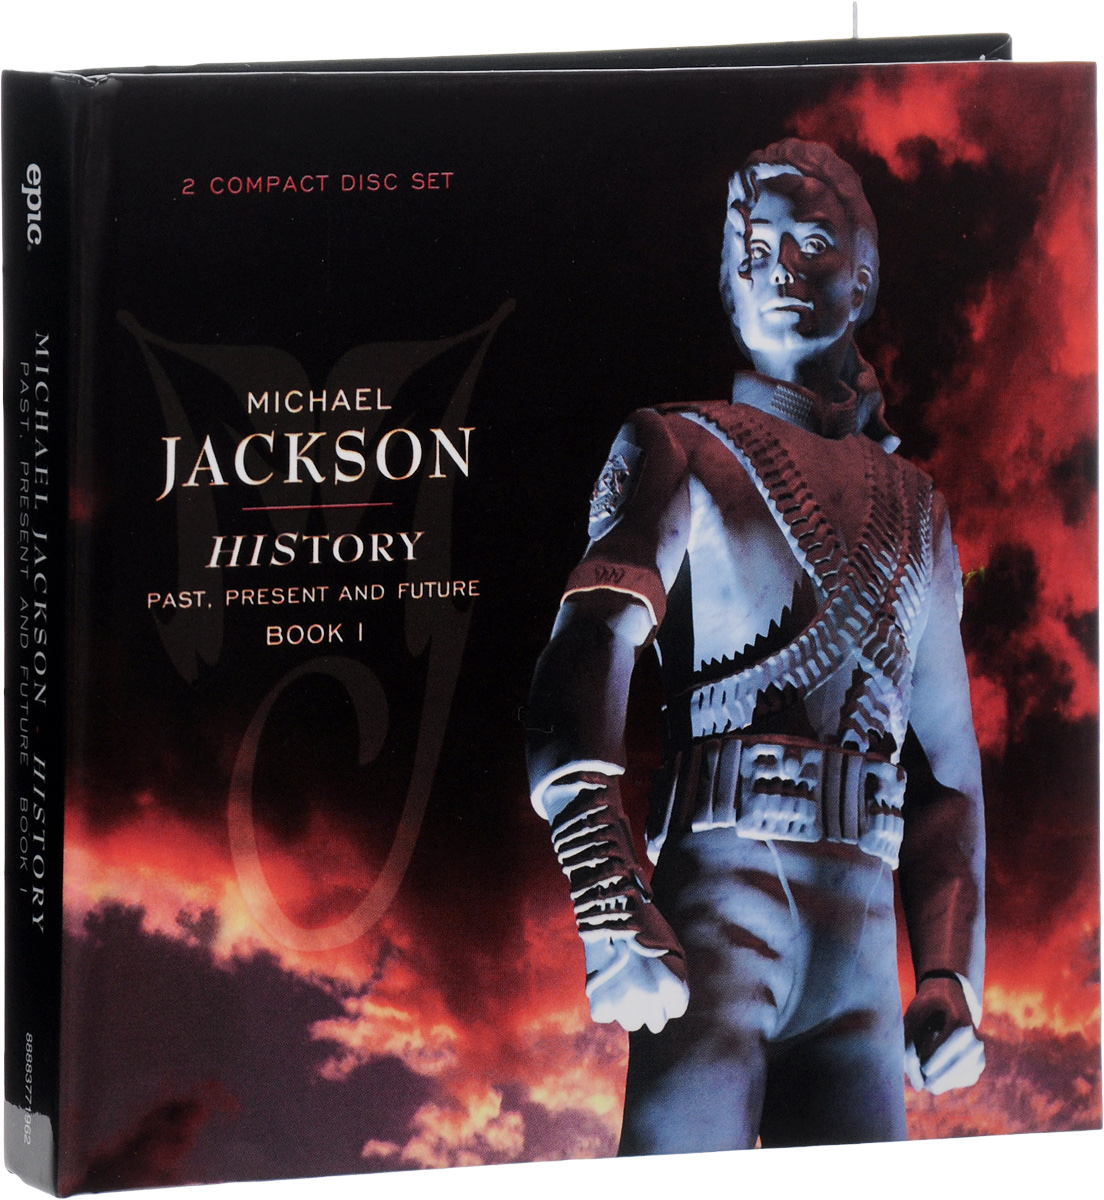 Майкл Джексон Michael Jackson. History - Past. Present And Future Book 1 (2 CD) flexible solar panels 25w for boats with connection box 0 9m cable mc4 connector 12v